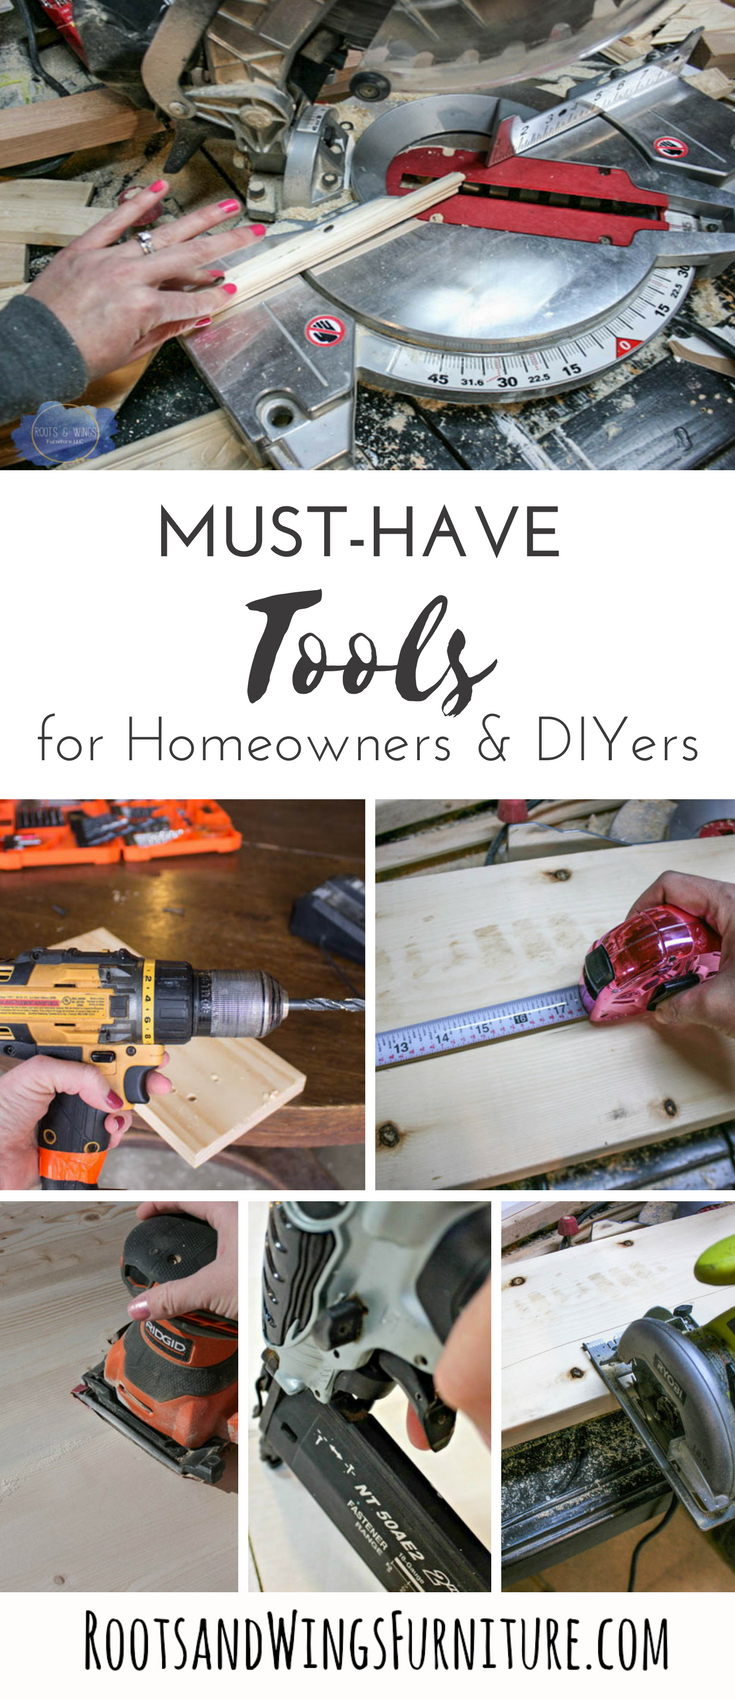 http://www.rootsandwingsfurniture.com/blog/musthavetools